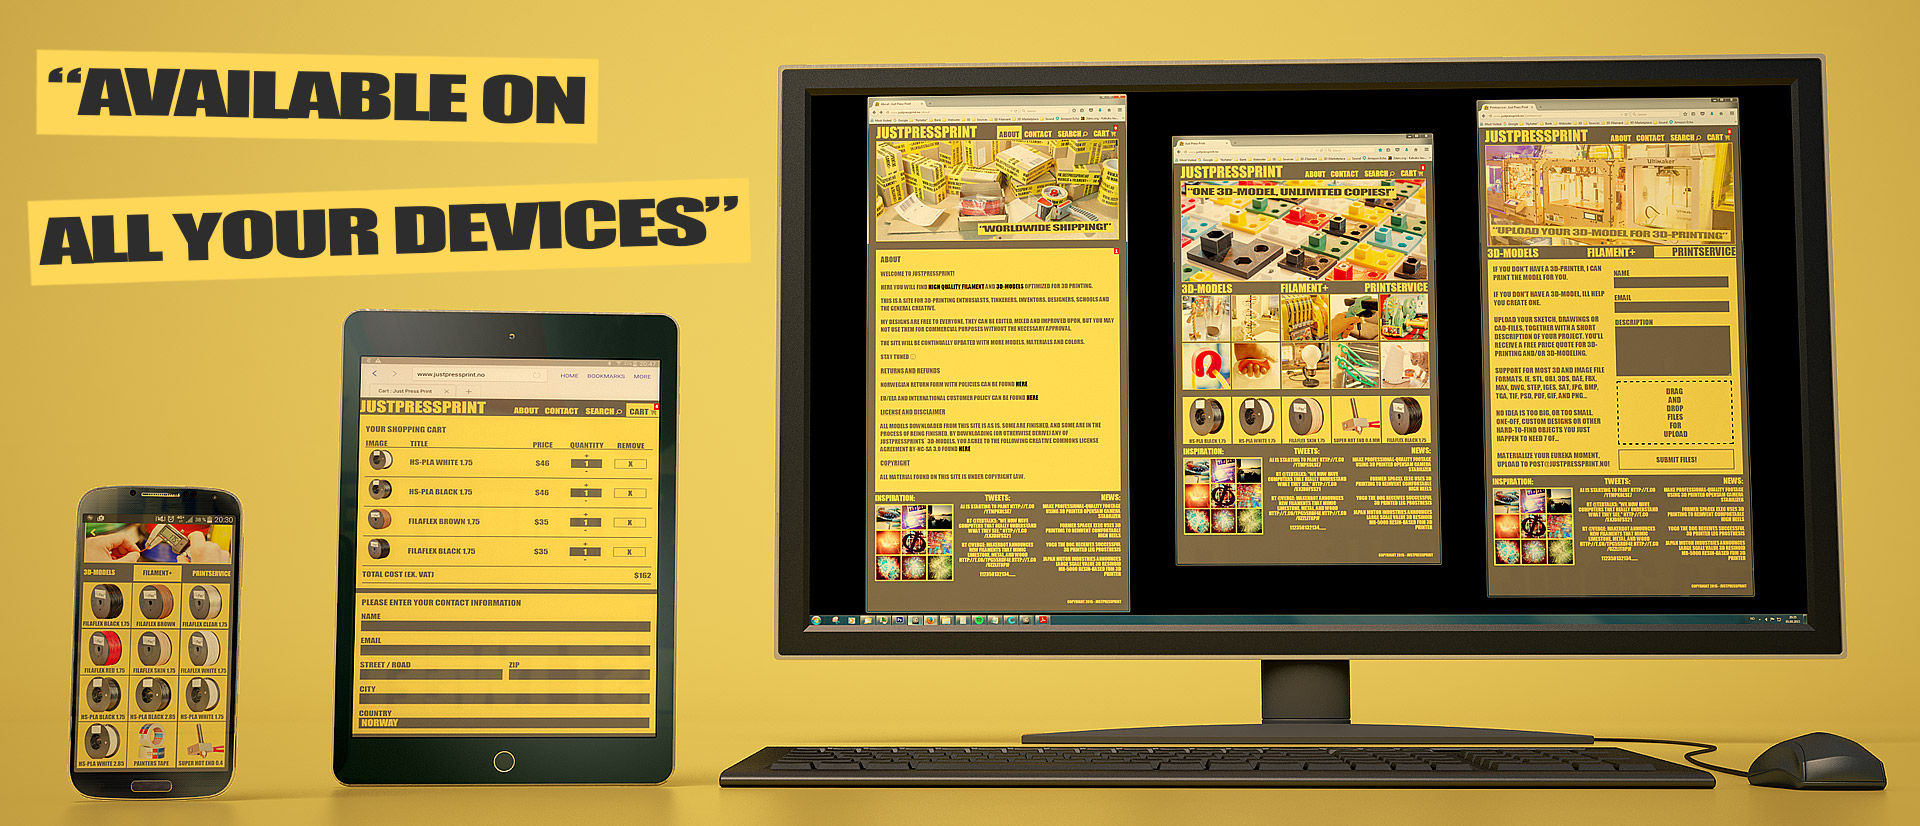 Justpressprint available all devices mobile pad workstation